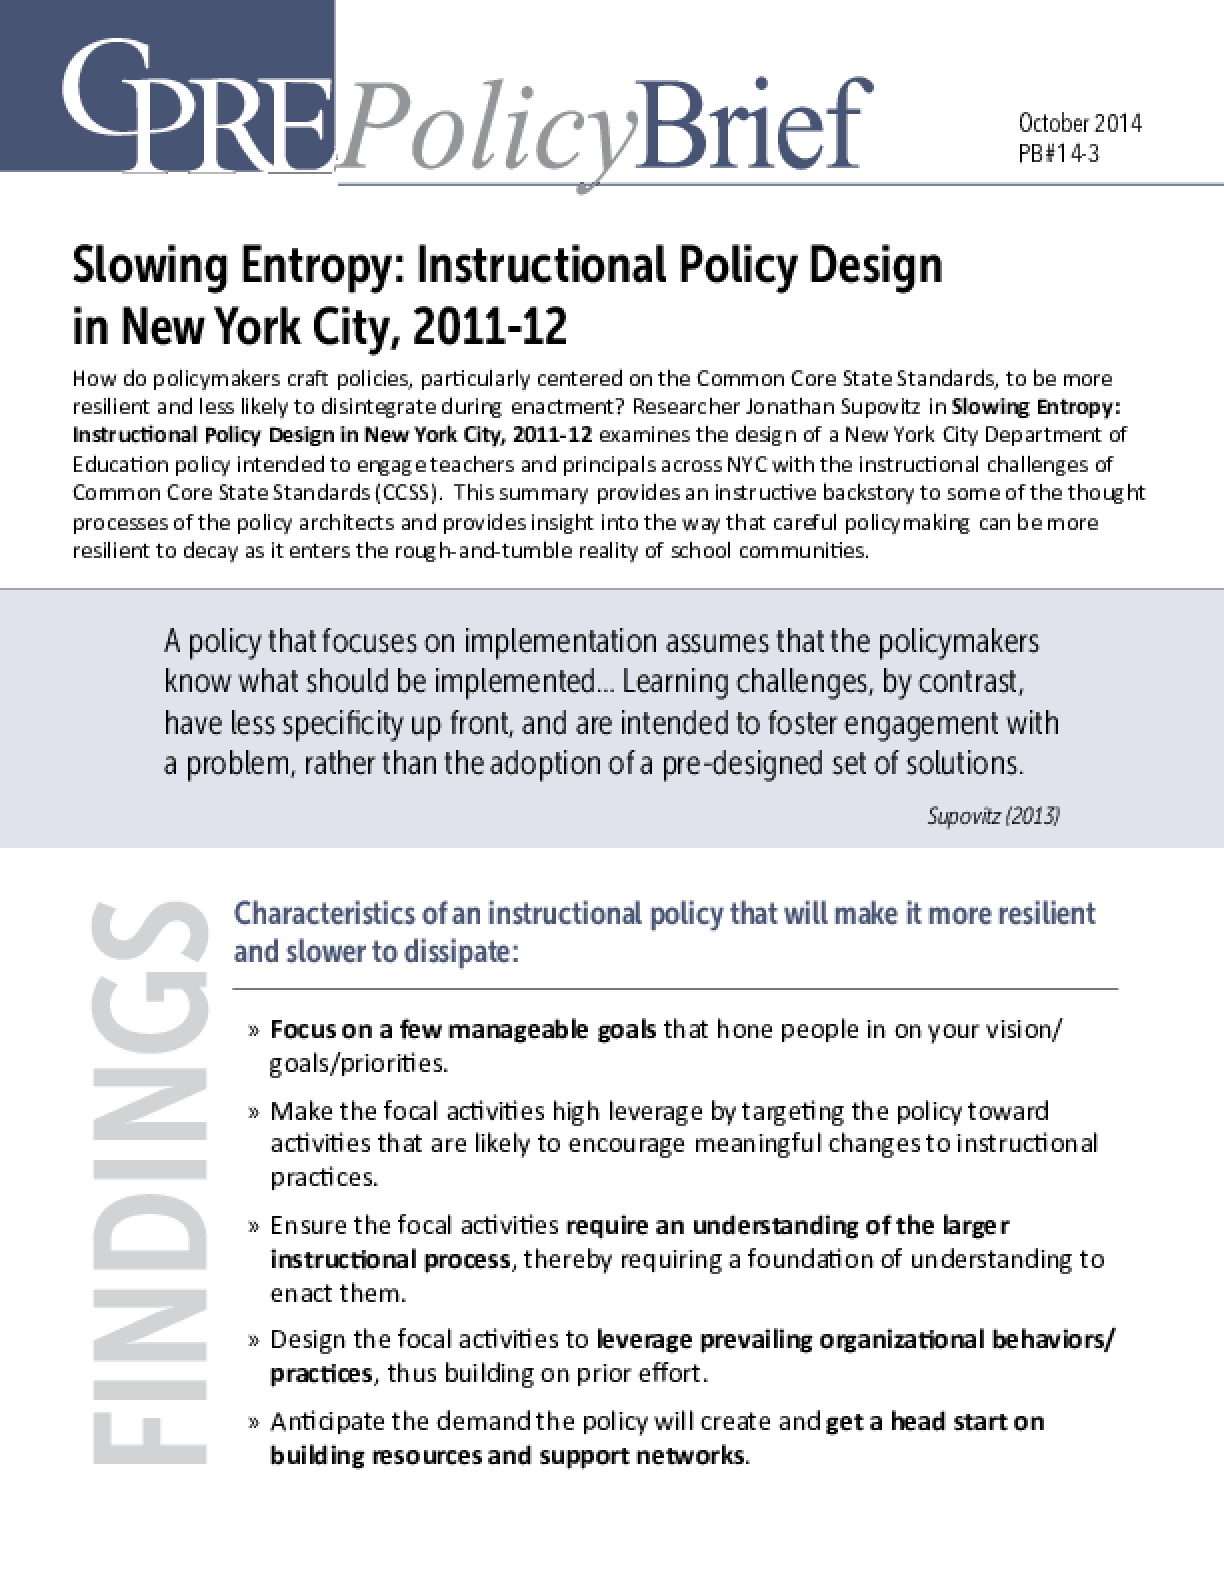 Slowing Entropy: Instructional Policy Design in New York City, 2011-12, Policy Brief